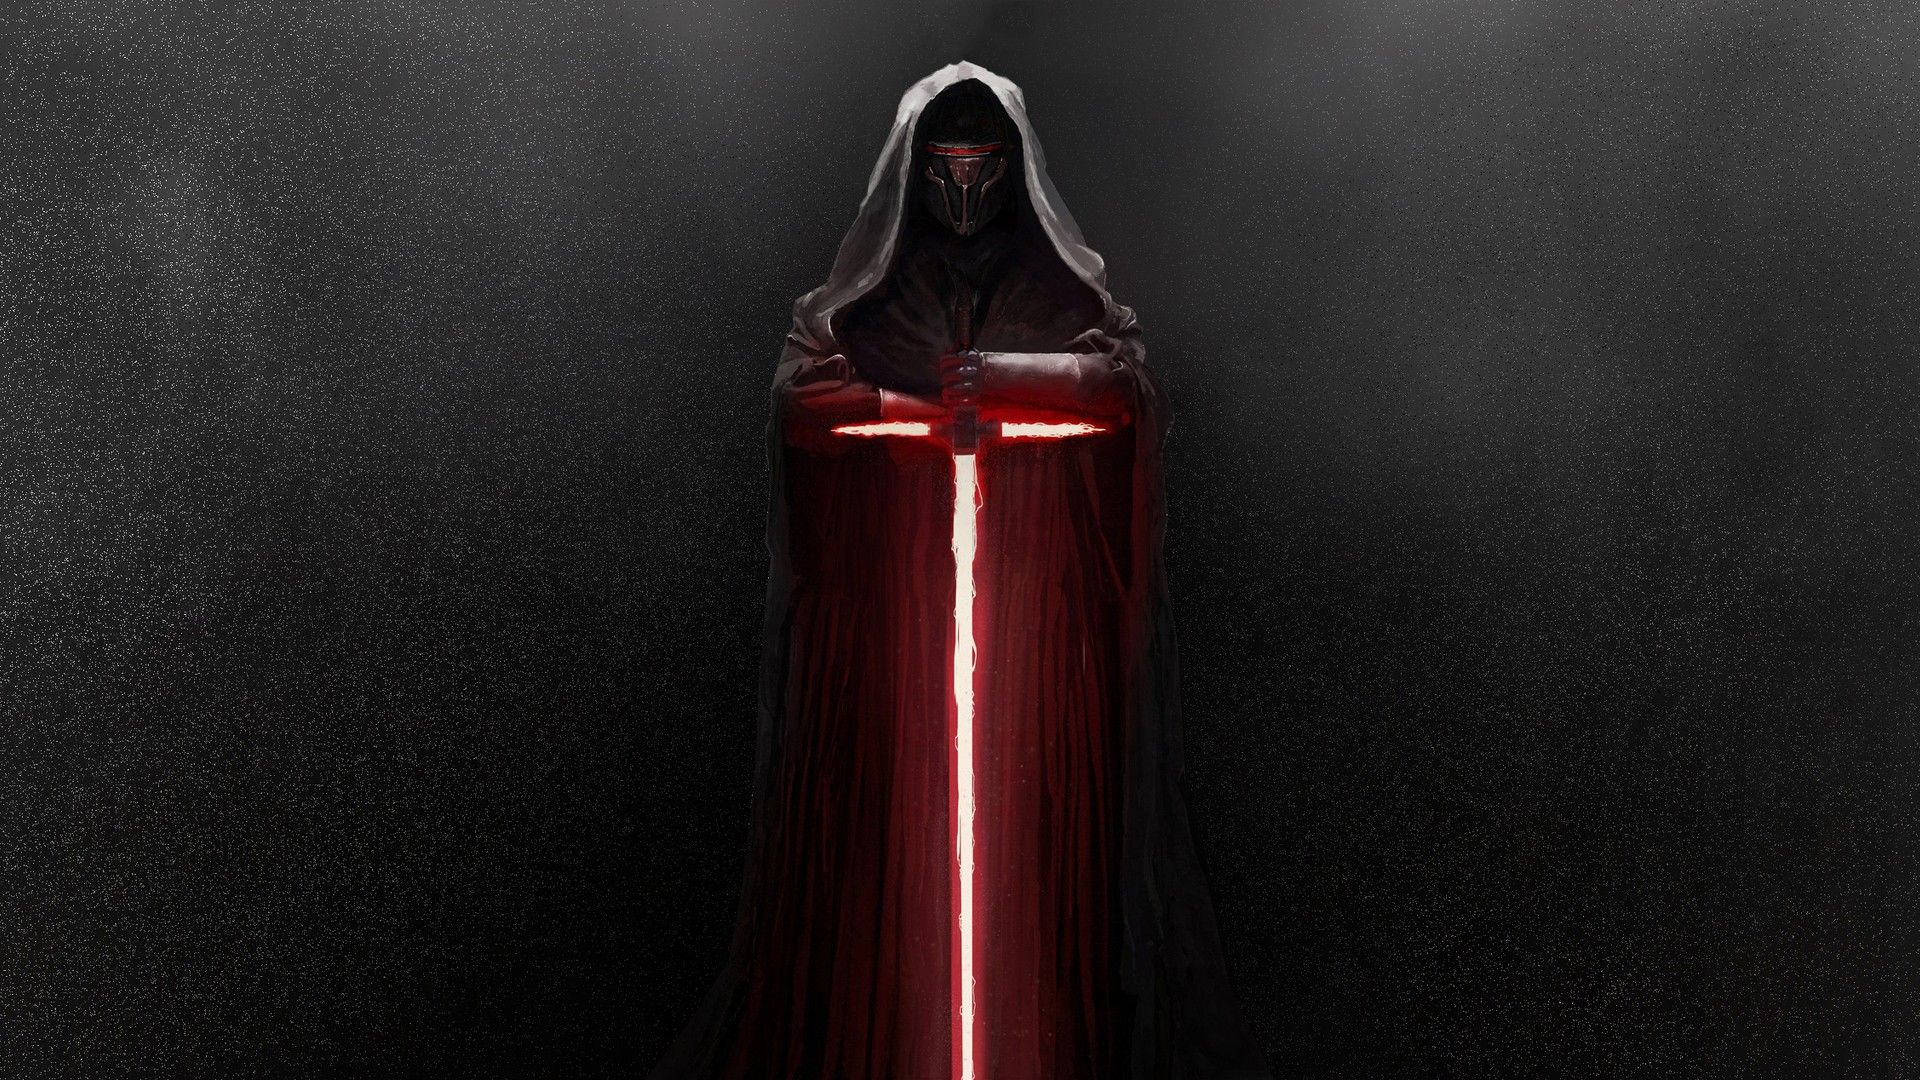 kylo ren wallpaper 1920x1080 1920x1080 for android Обои